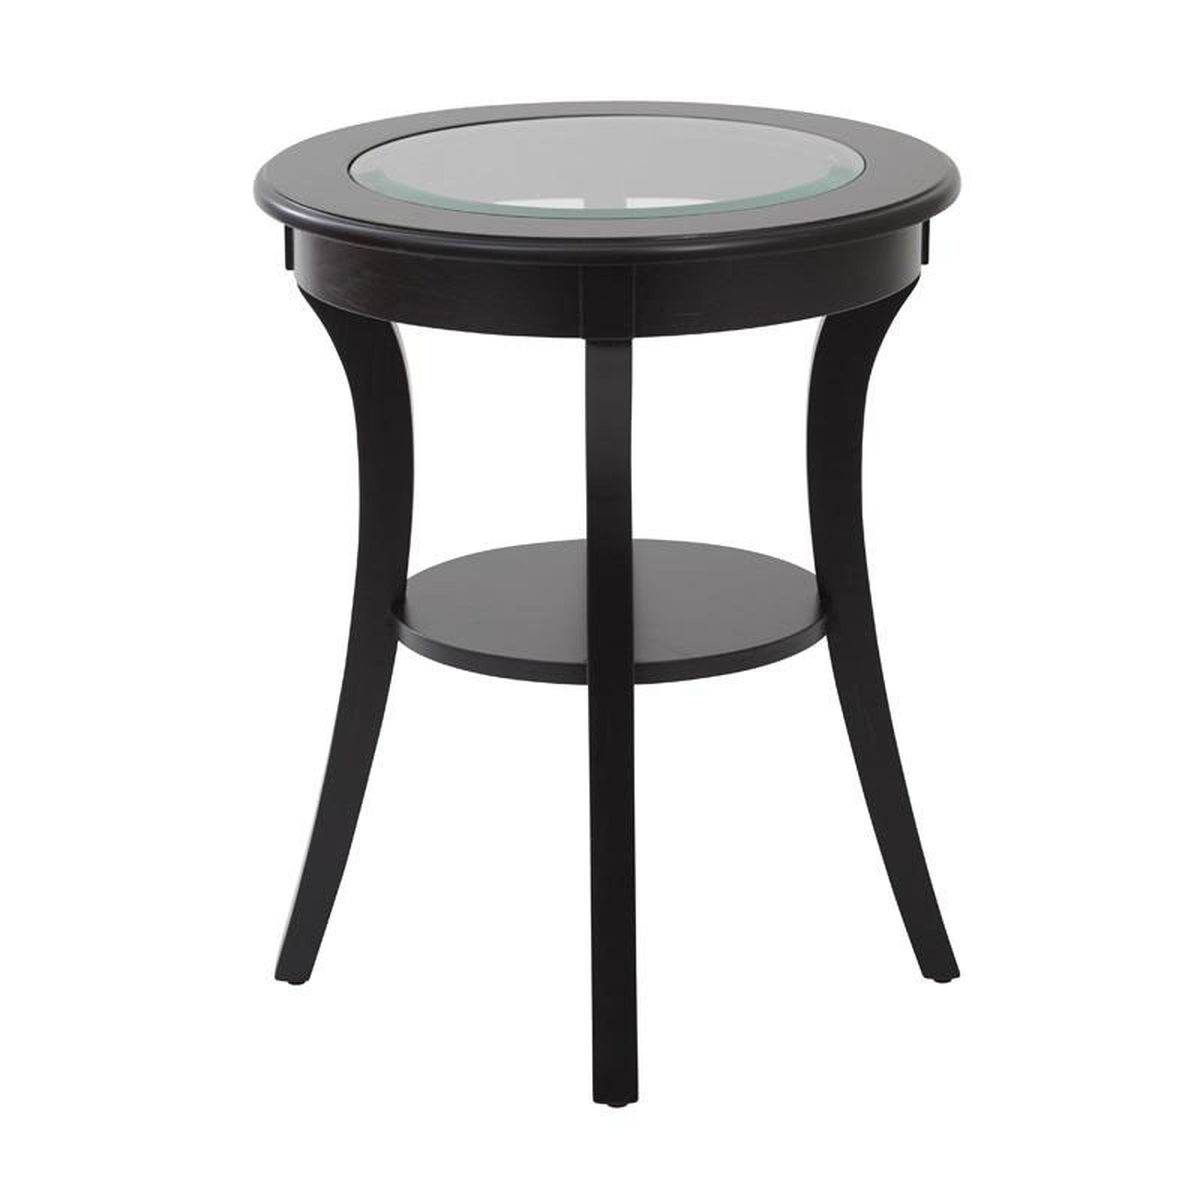 harper black glass accent table bizchair office star products shelf our osp designs round top with wood finish and room essentials concrete coffee white dining chairs patio swing